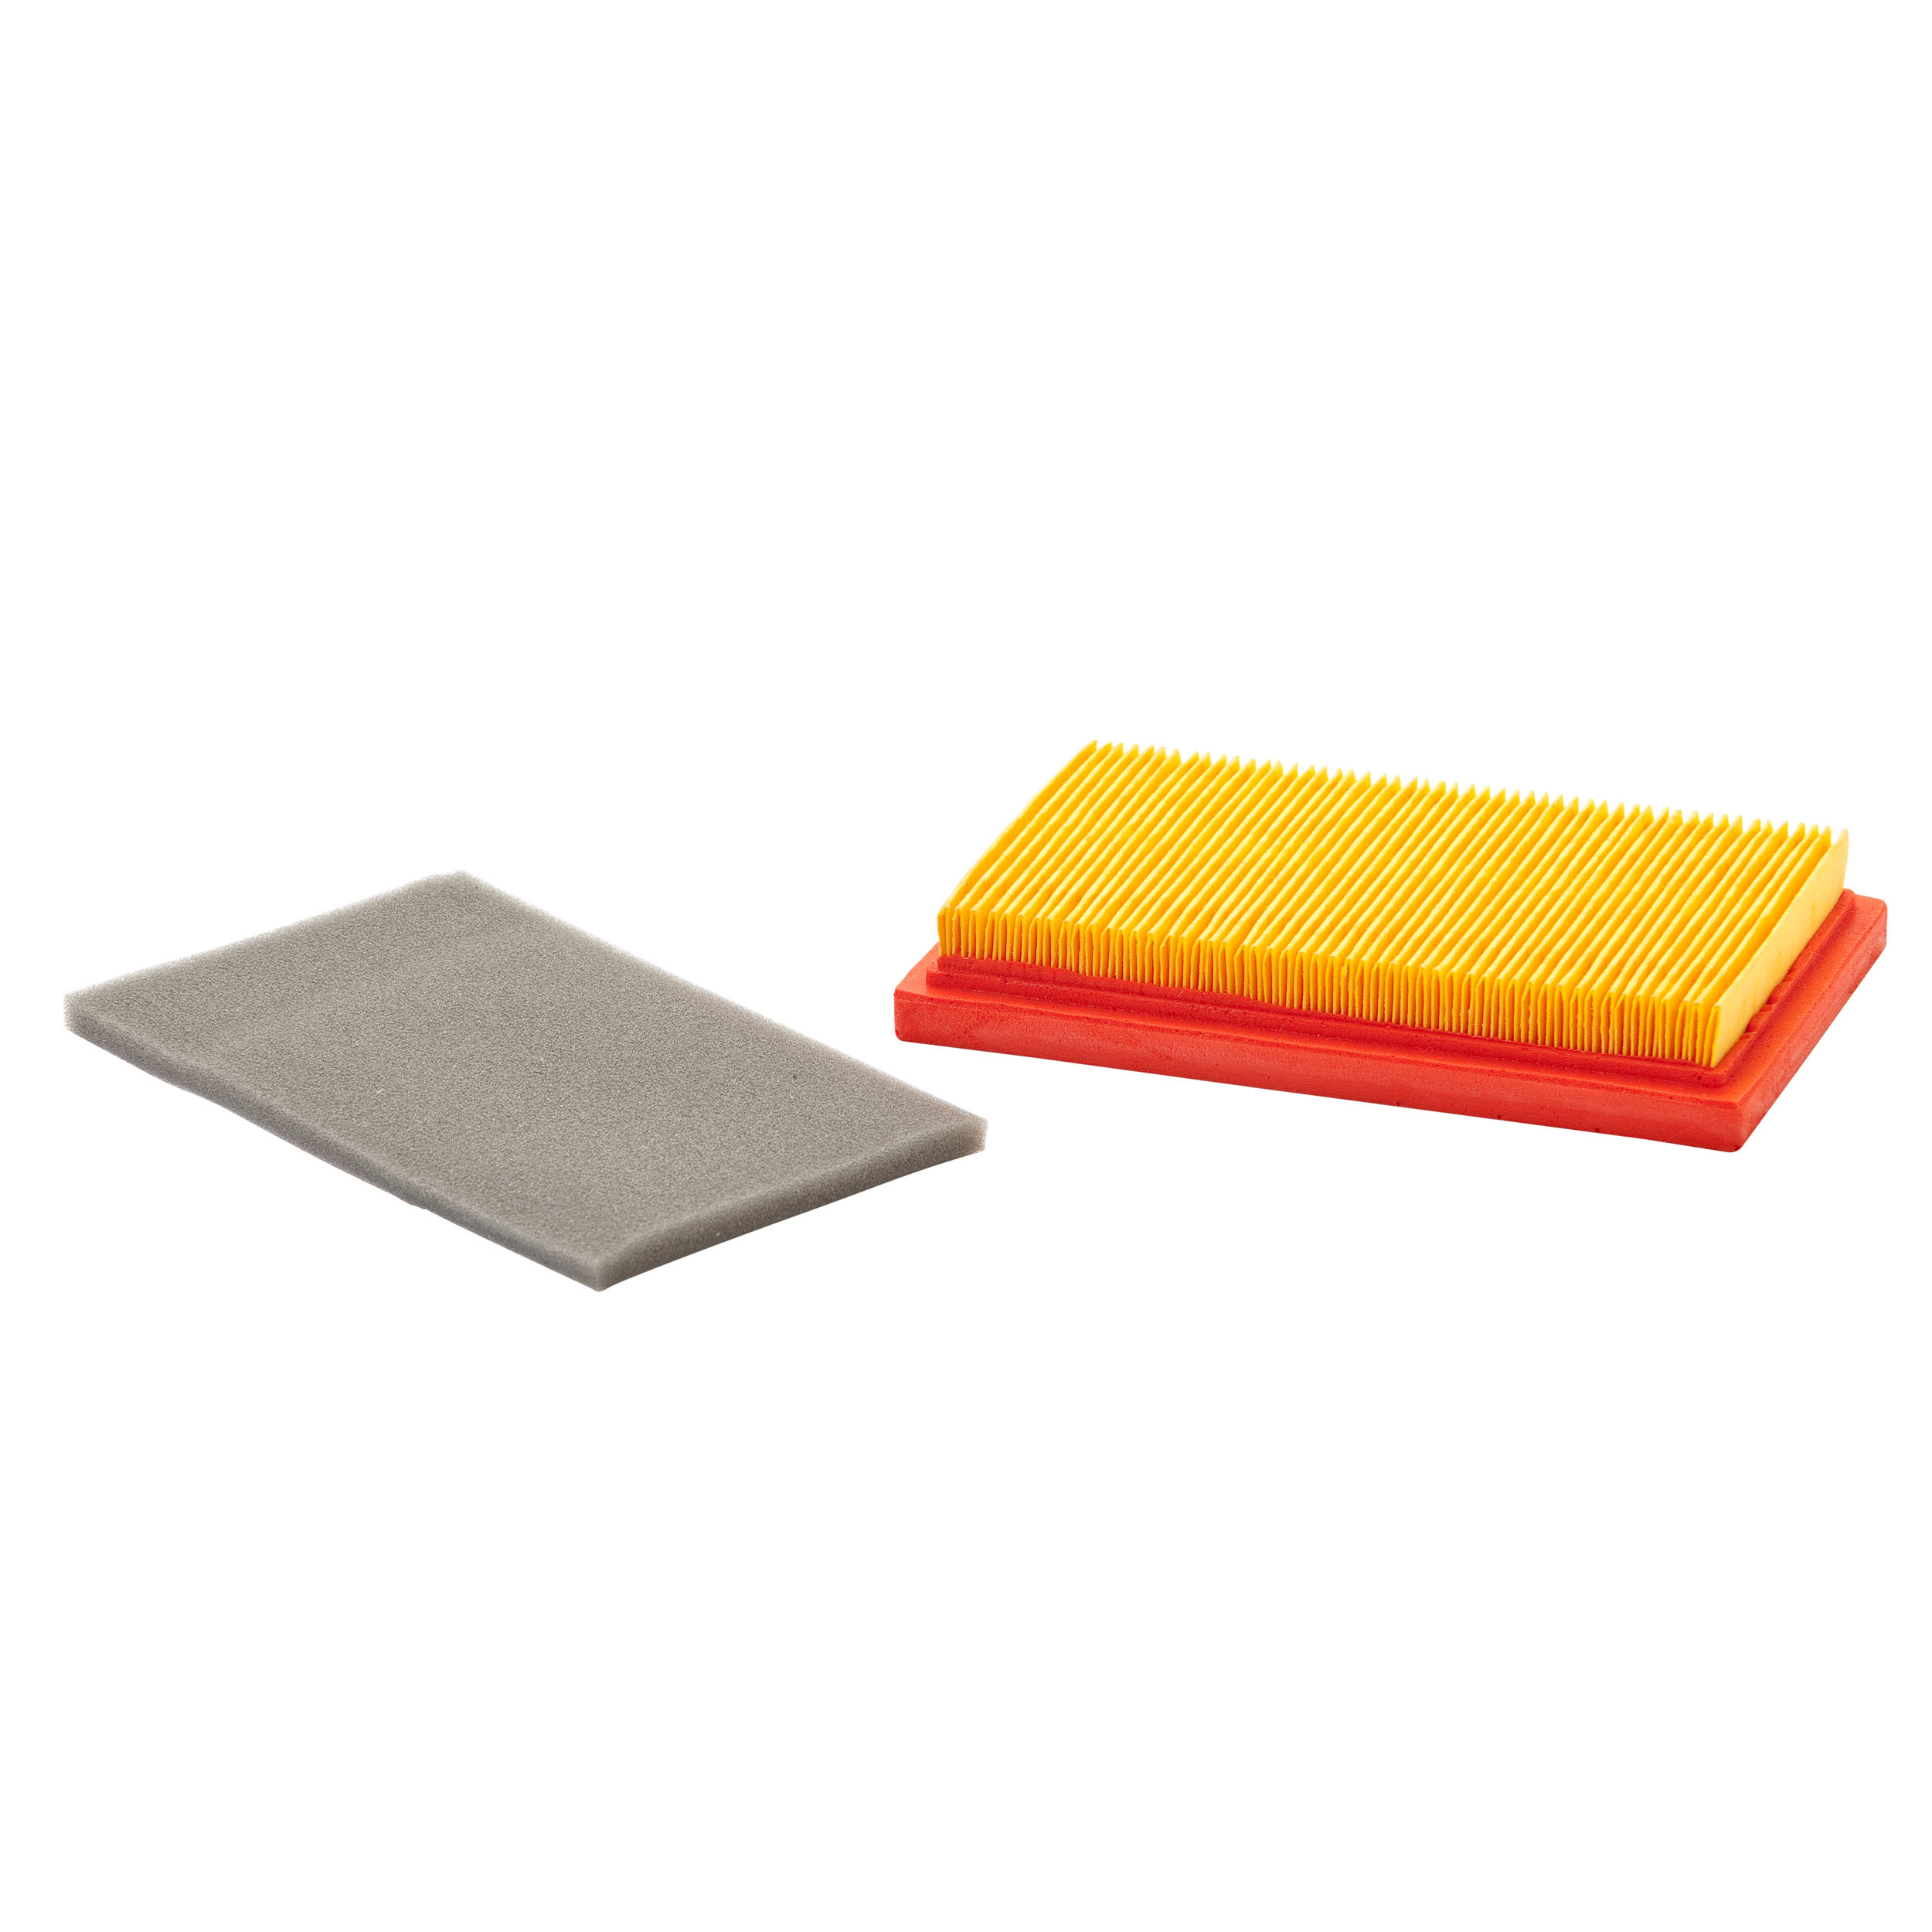 Air Filter For MTD # 951-10298